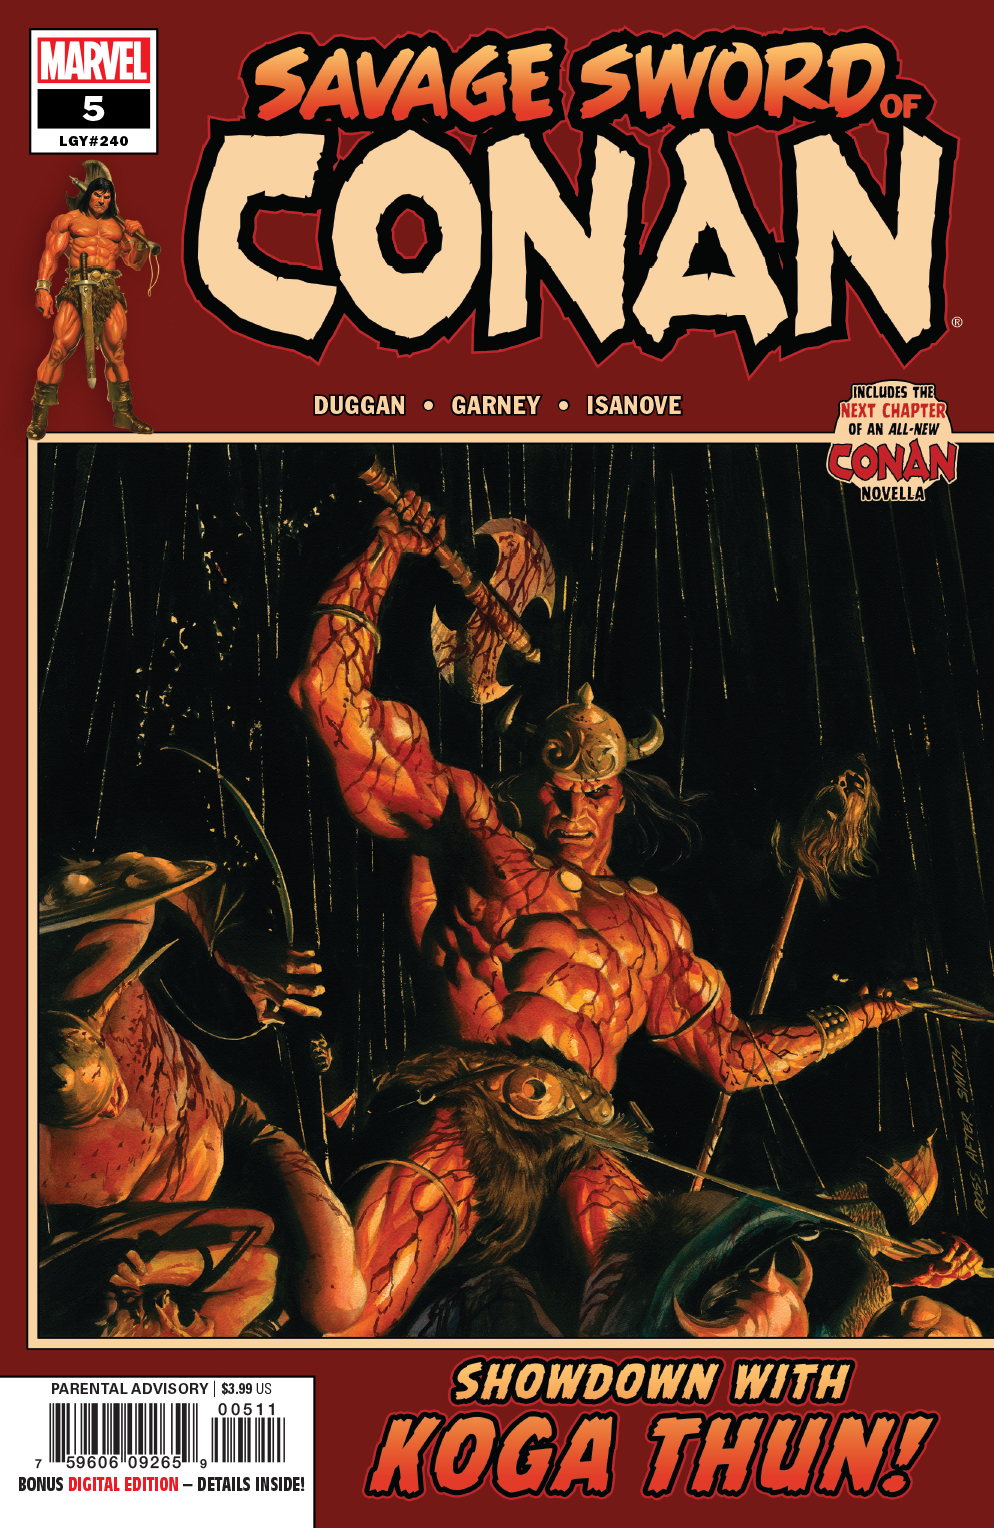 SAVAGE SWORD OF CONAN #5